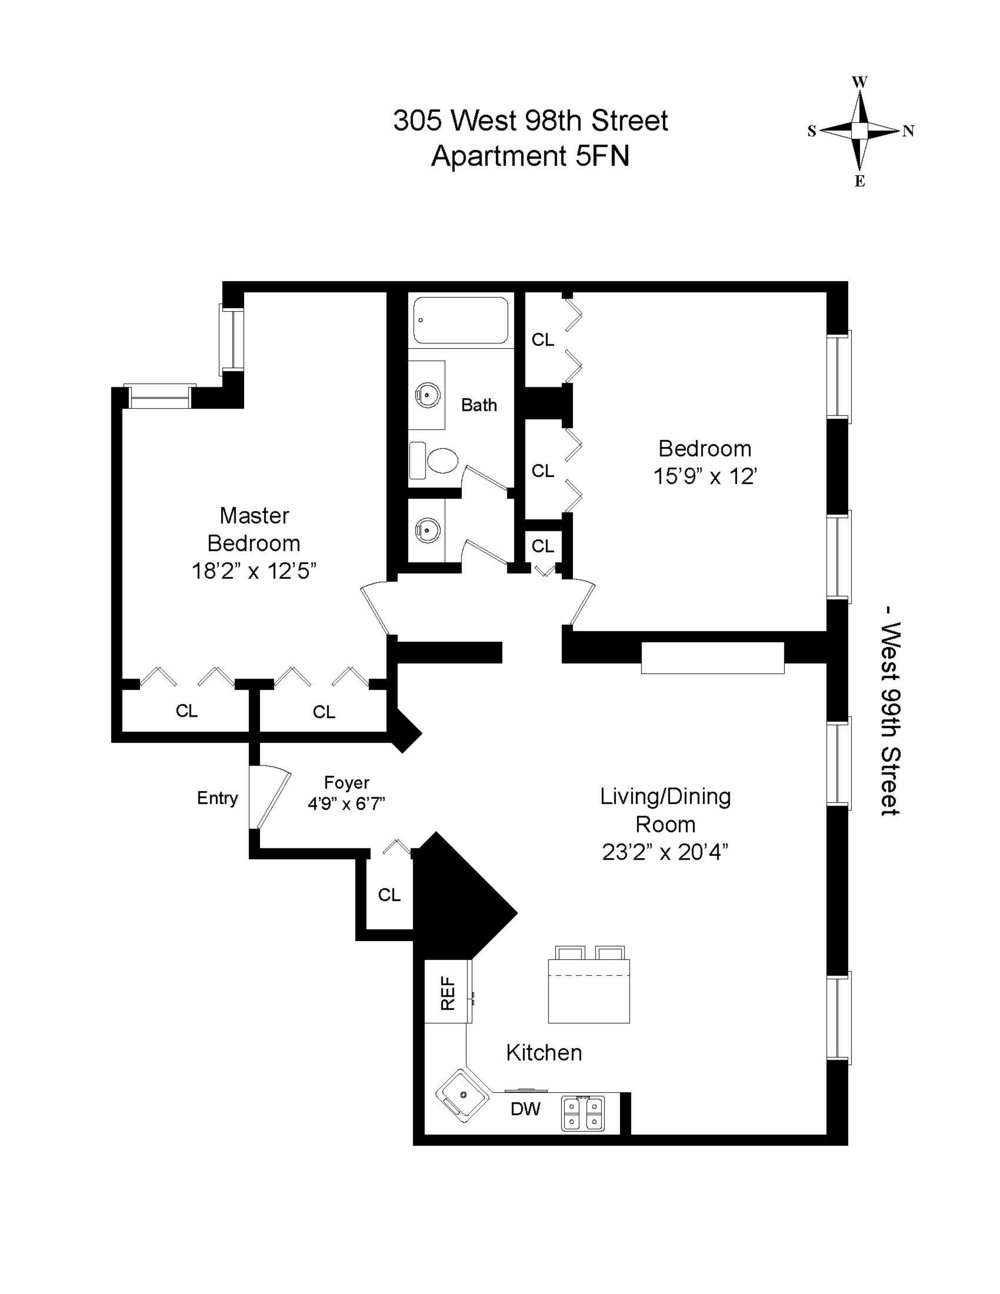 FLOOR PLAN_305 WEST 98TH STREET 5FN.jpg